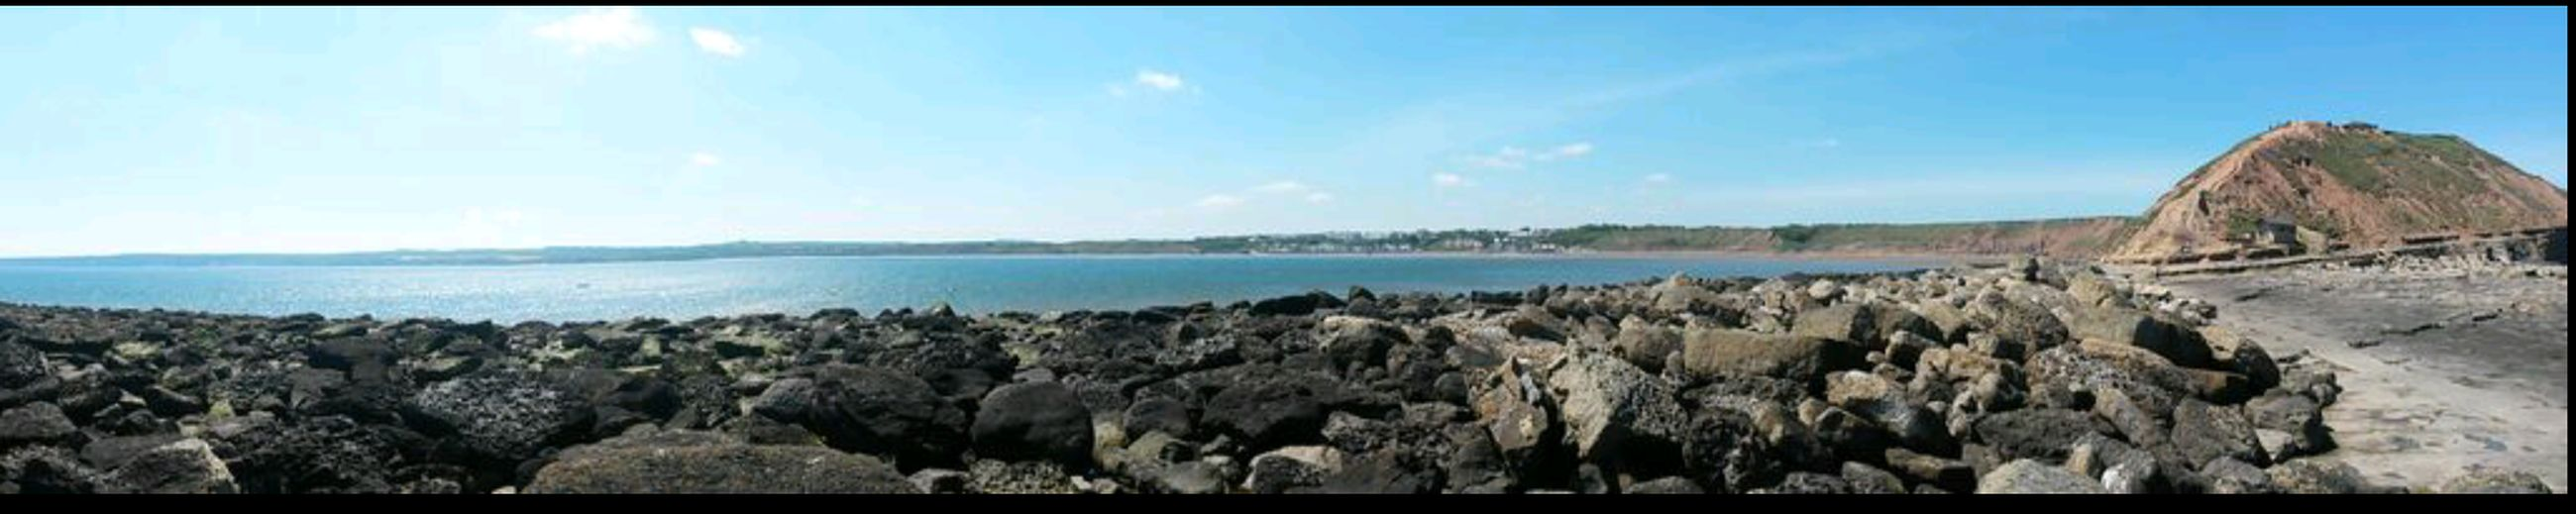 Sea Water Beach Filey Filey Bay Filey Beach Filey Seafront Fileybrig Panoramic Landscape Mobile Photography Panorama View First Eyeem Photo Snapshots_daily Photography Photooftheday PhonePhotography Beachday Cliffside View Cliffs And Sea